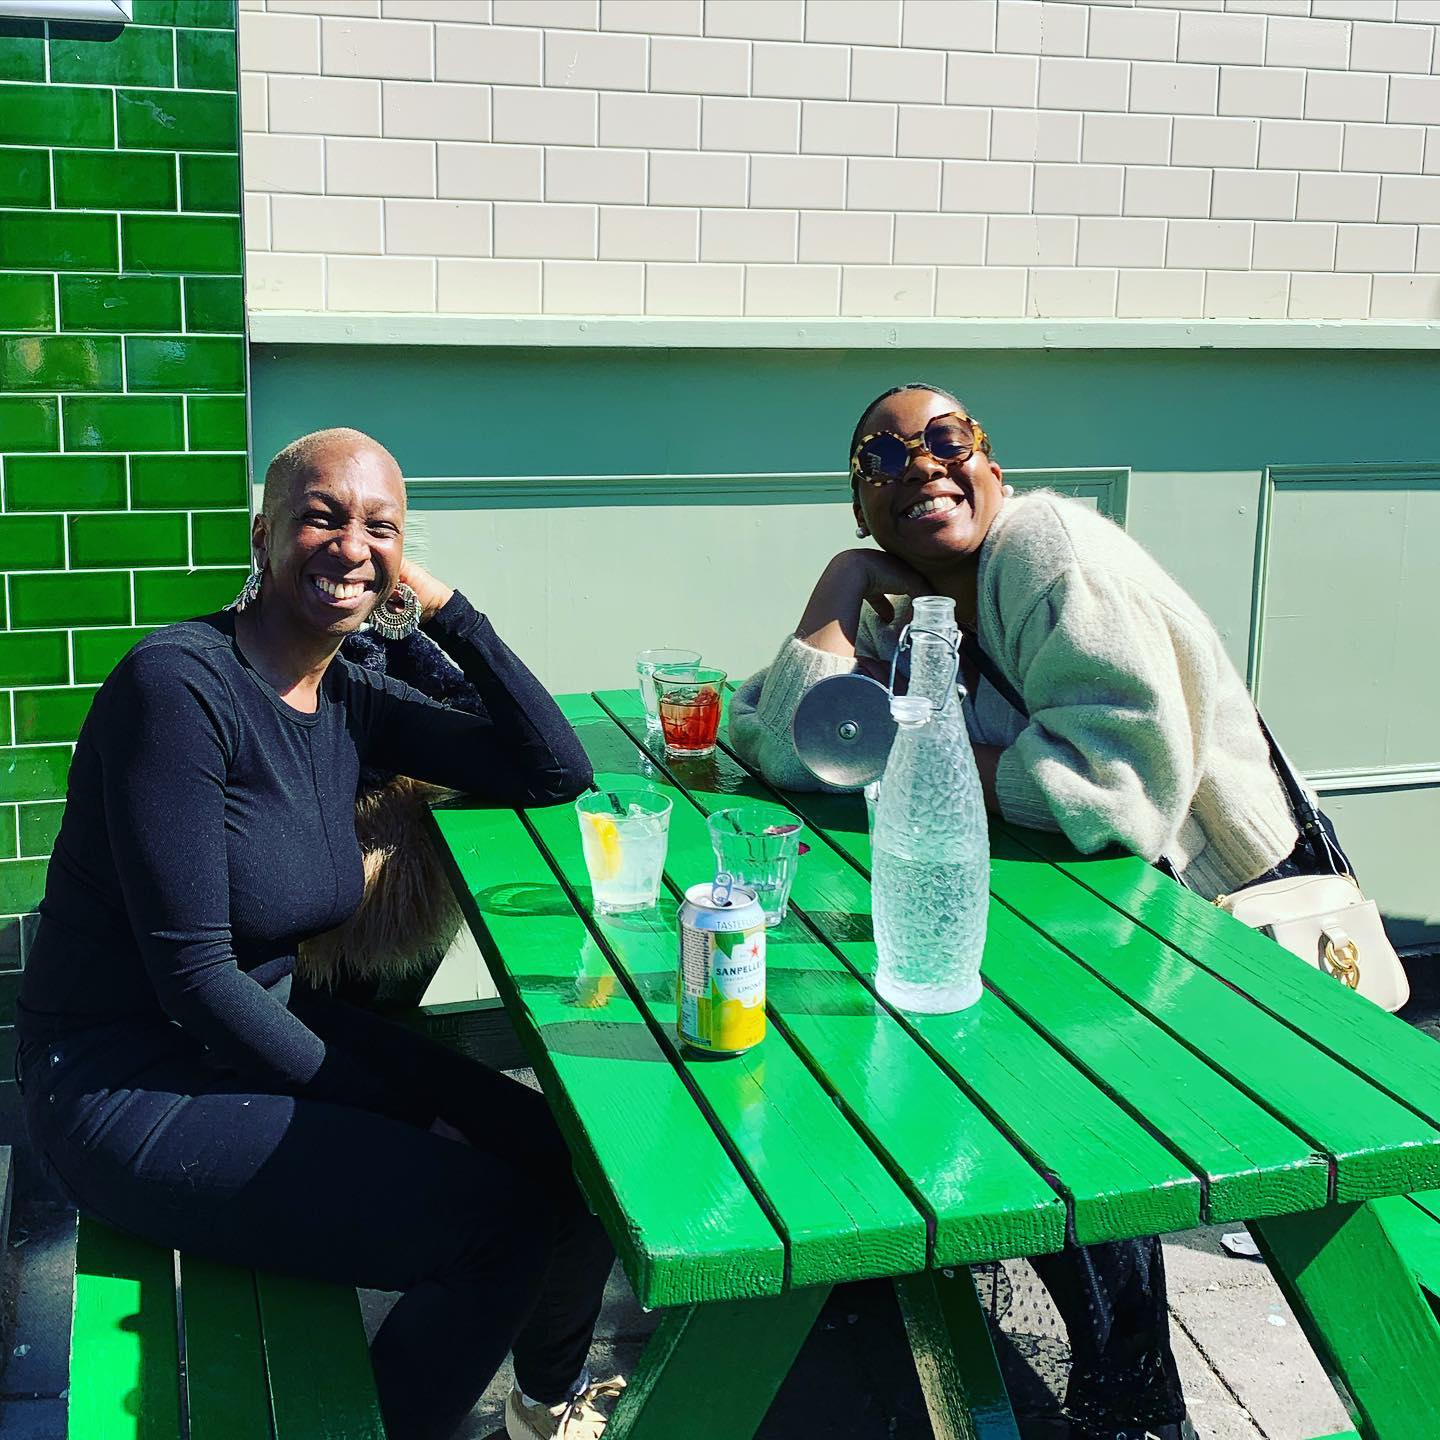 These lovely ladies are living it up on Costa del Well Street! This could be you! Hit up our website for bookings and you too could be having cocktails and pizza ☀️ . . . #sunshine #cocktails #pizza #youwantapizzame #hackney #vibes